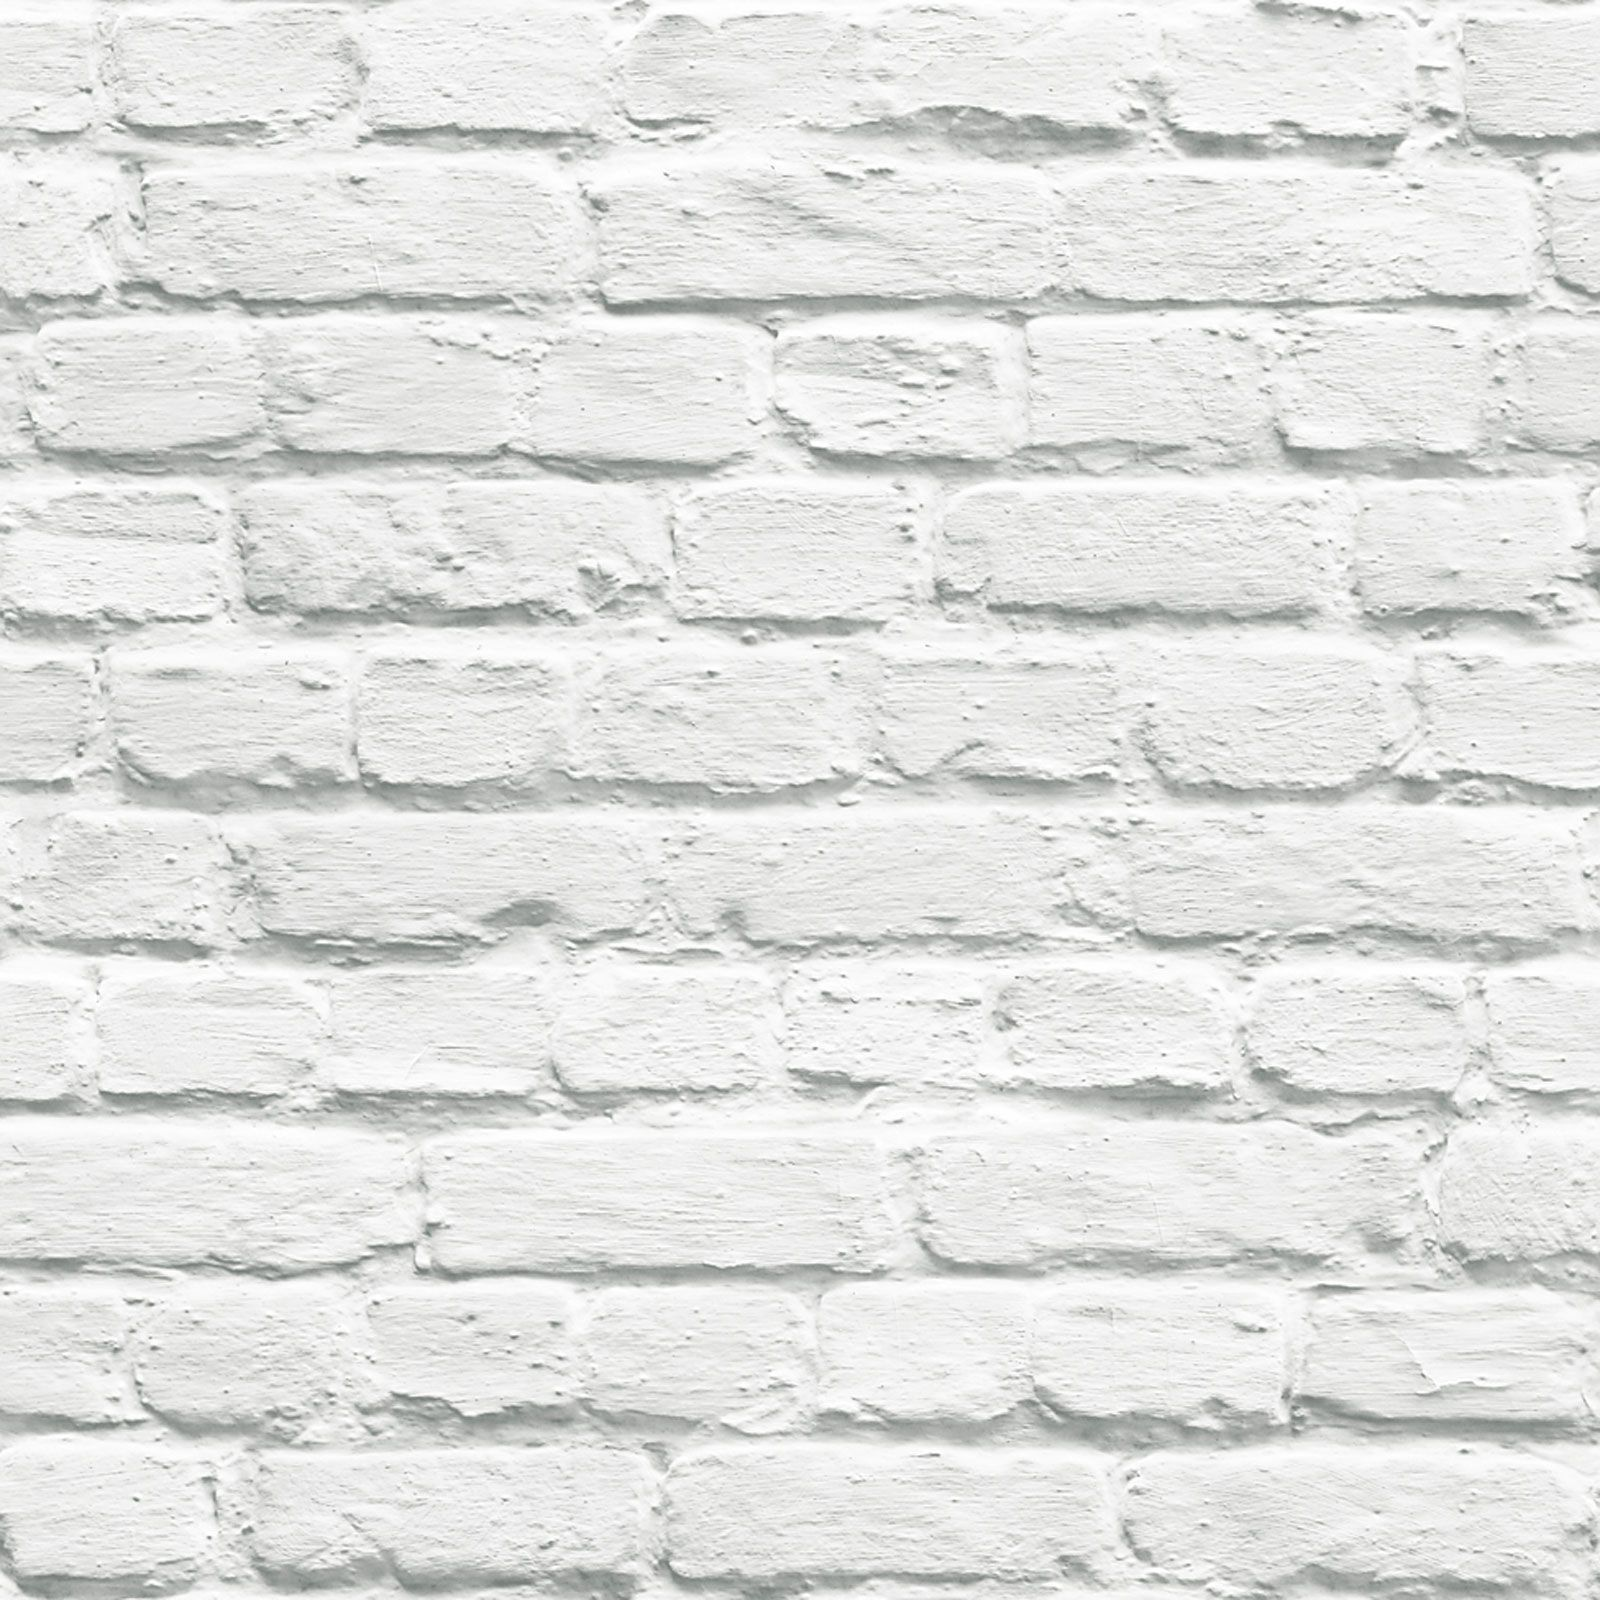 Papel pintado ladrillo blanco ds935201 24 1600 - Perchas de pared de diseno ...